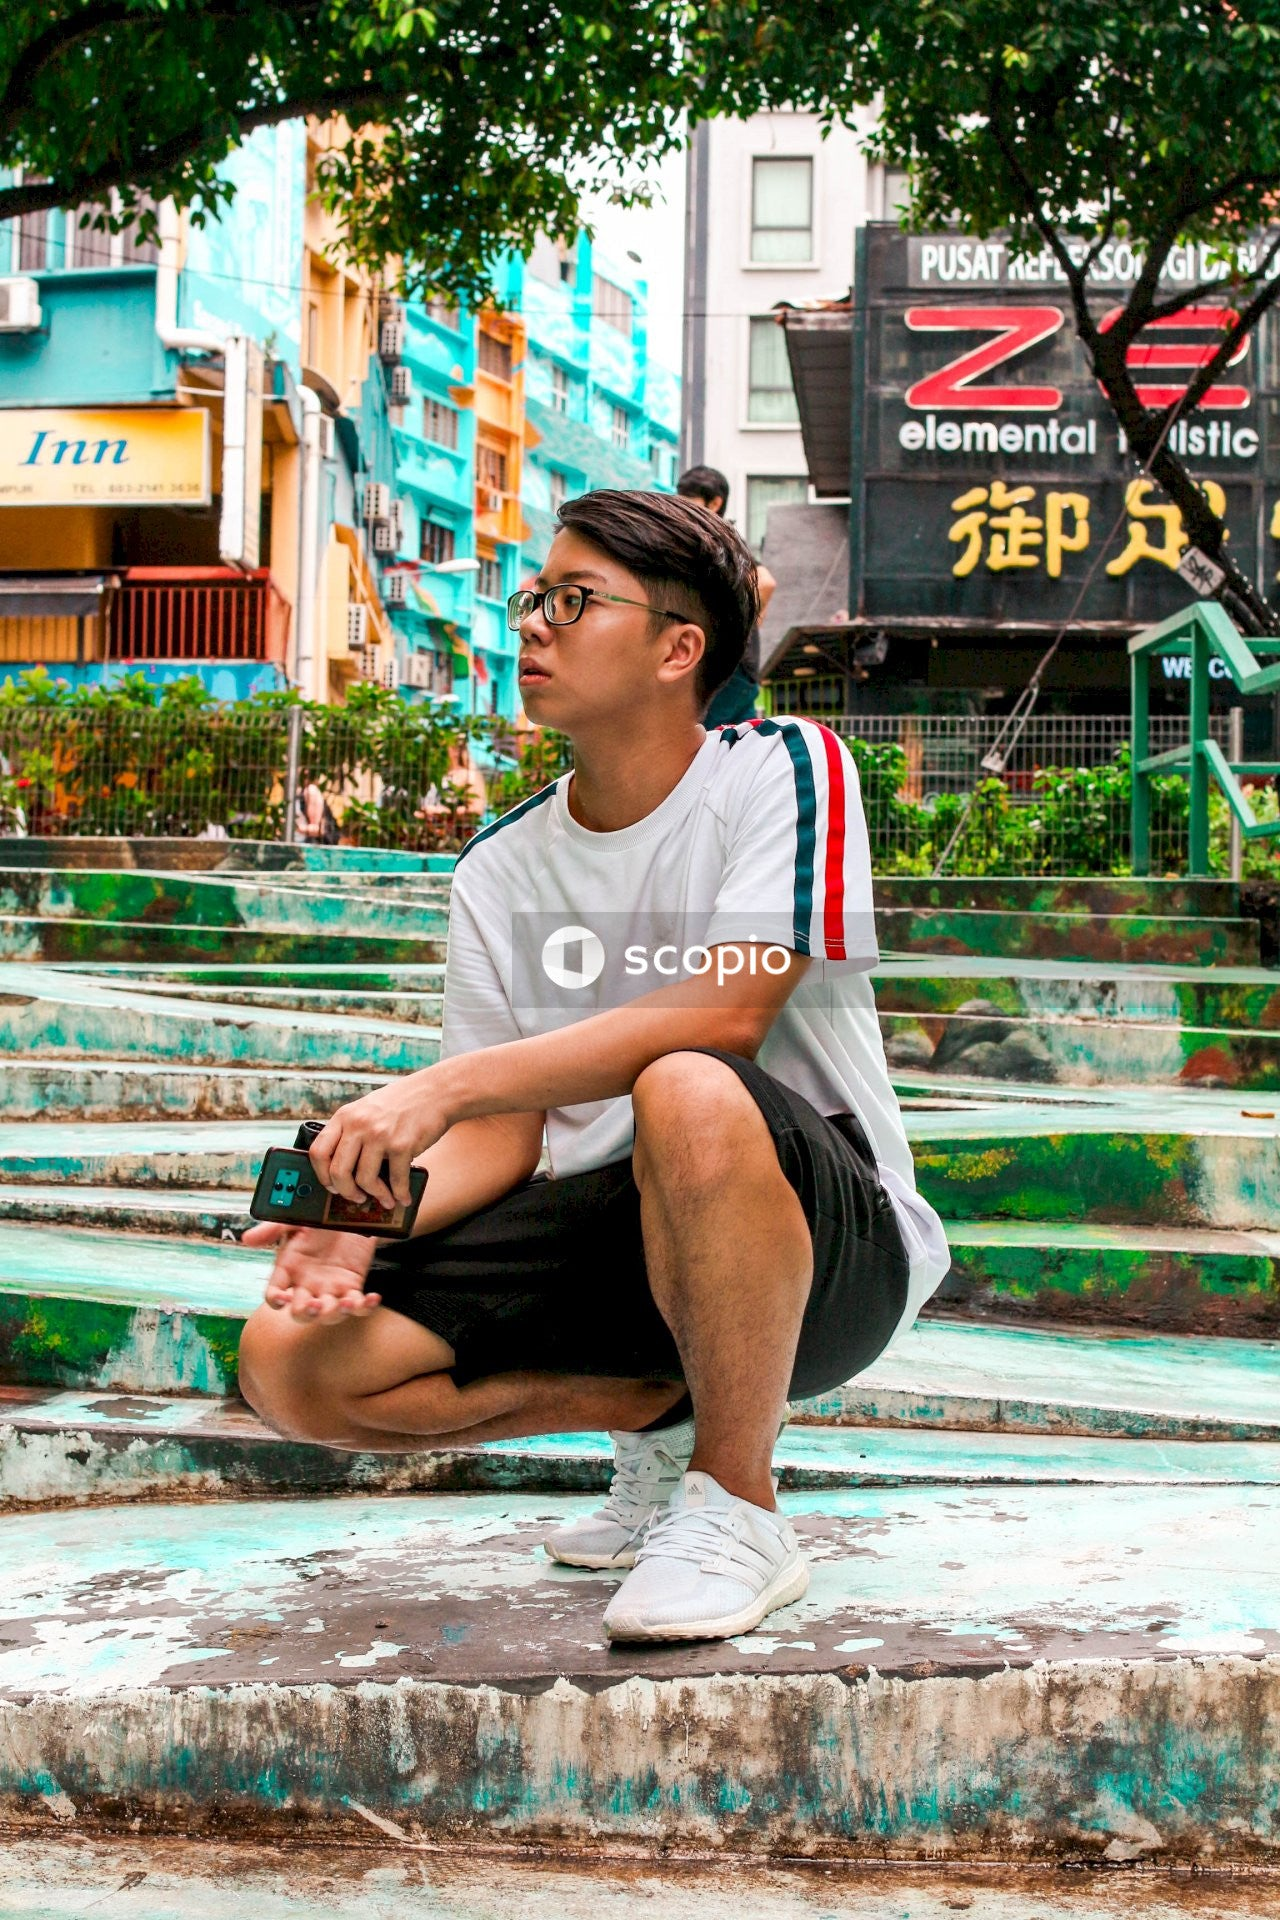 Man in white crew neck t-shirt and gray shorts sitting on green metal bench